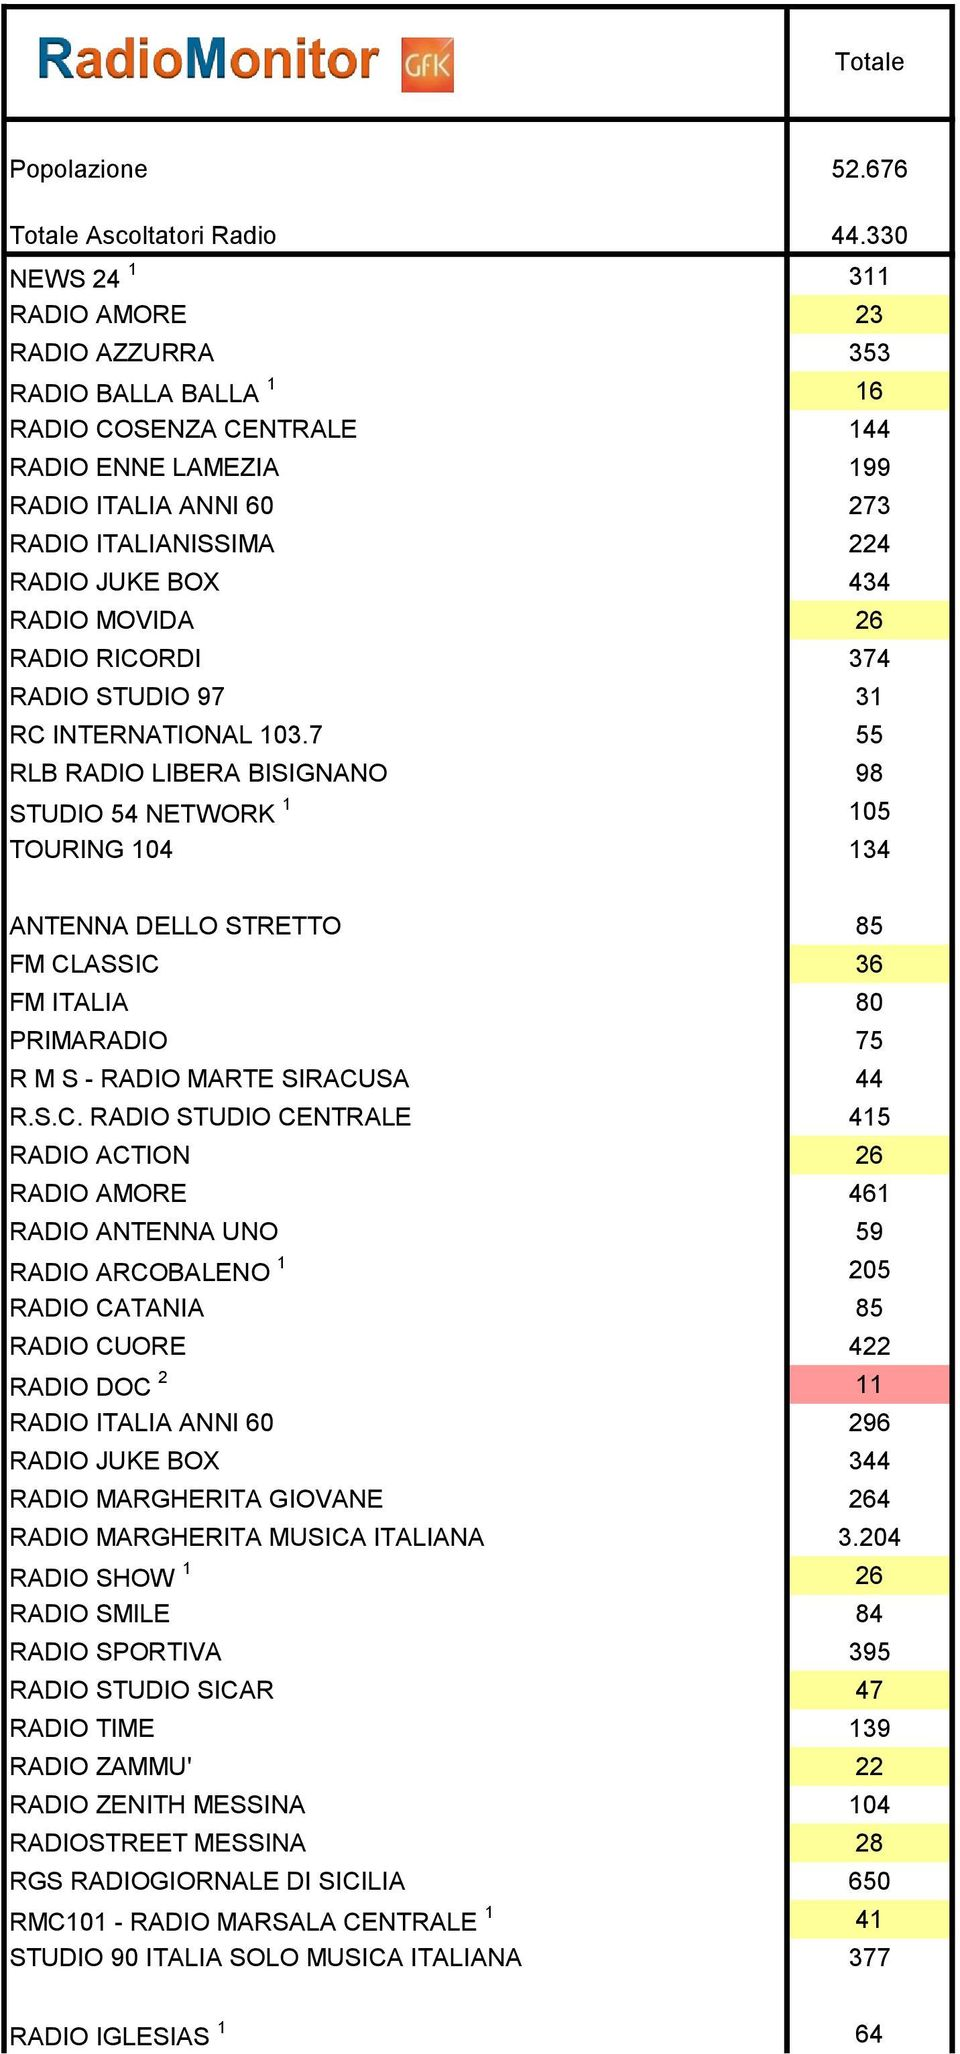 MOVIDA 26 RADIO RICORDI 374 RADIO STUDIO 97 31 RC INTERNATIONAL 103.